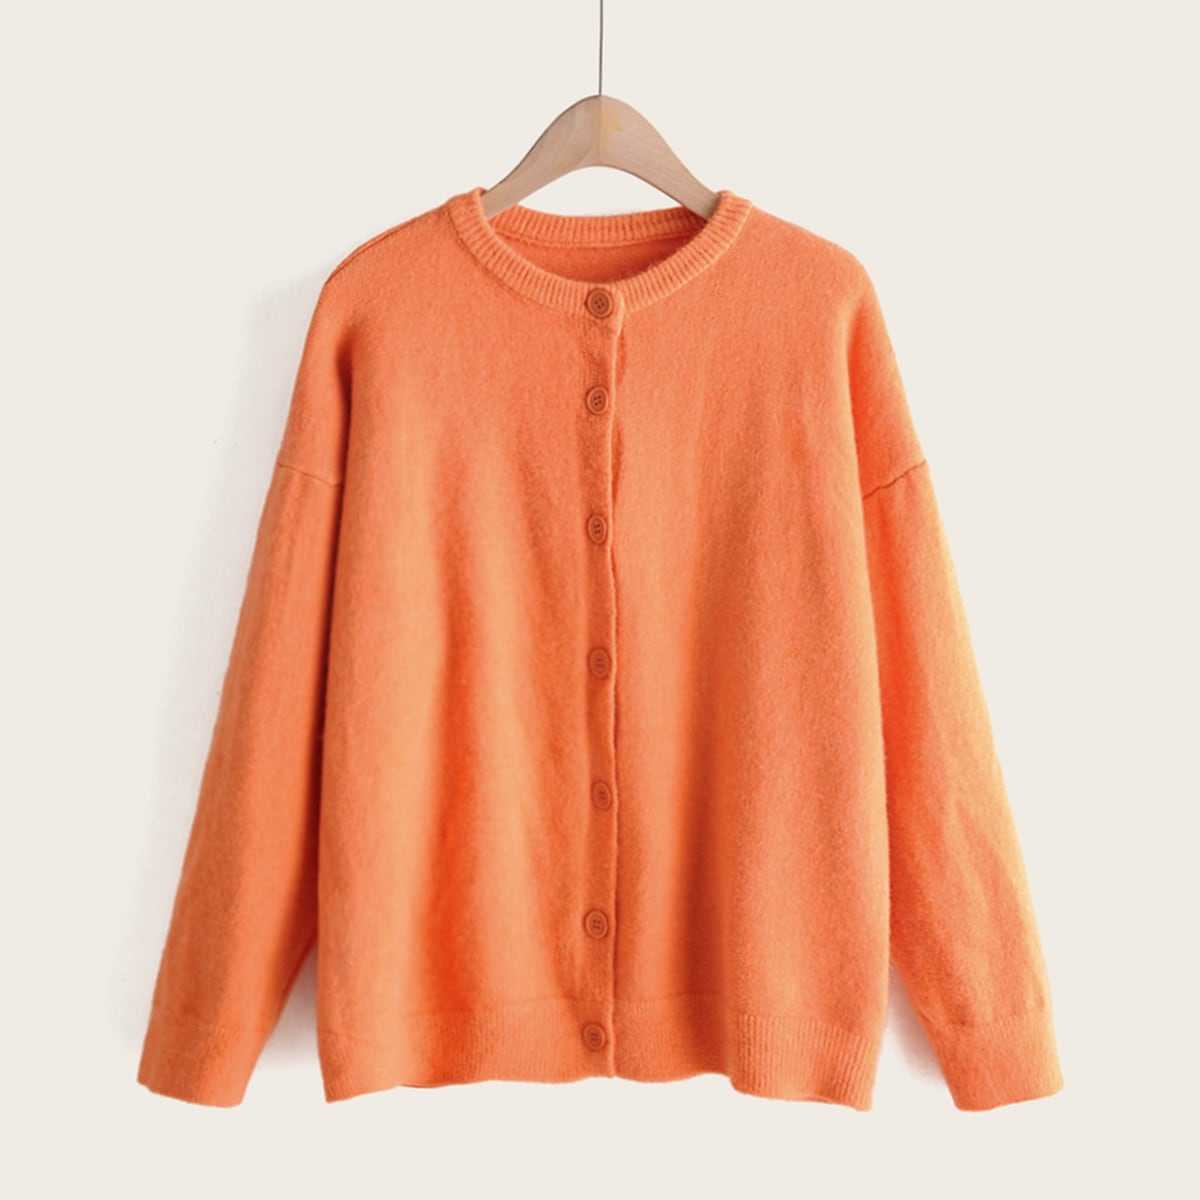 Drop Shoulder Button Through Cardigan in Orange by ROMWE on GOOFASH